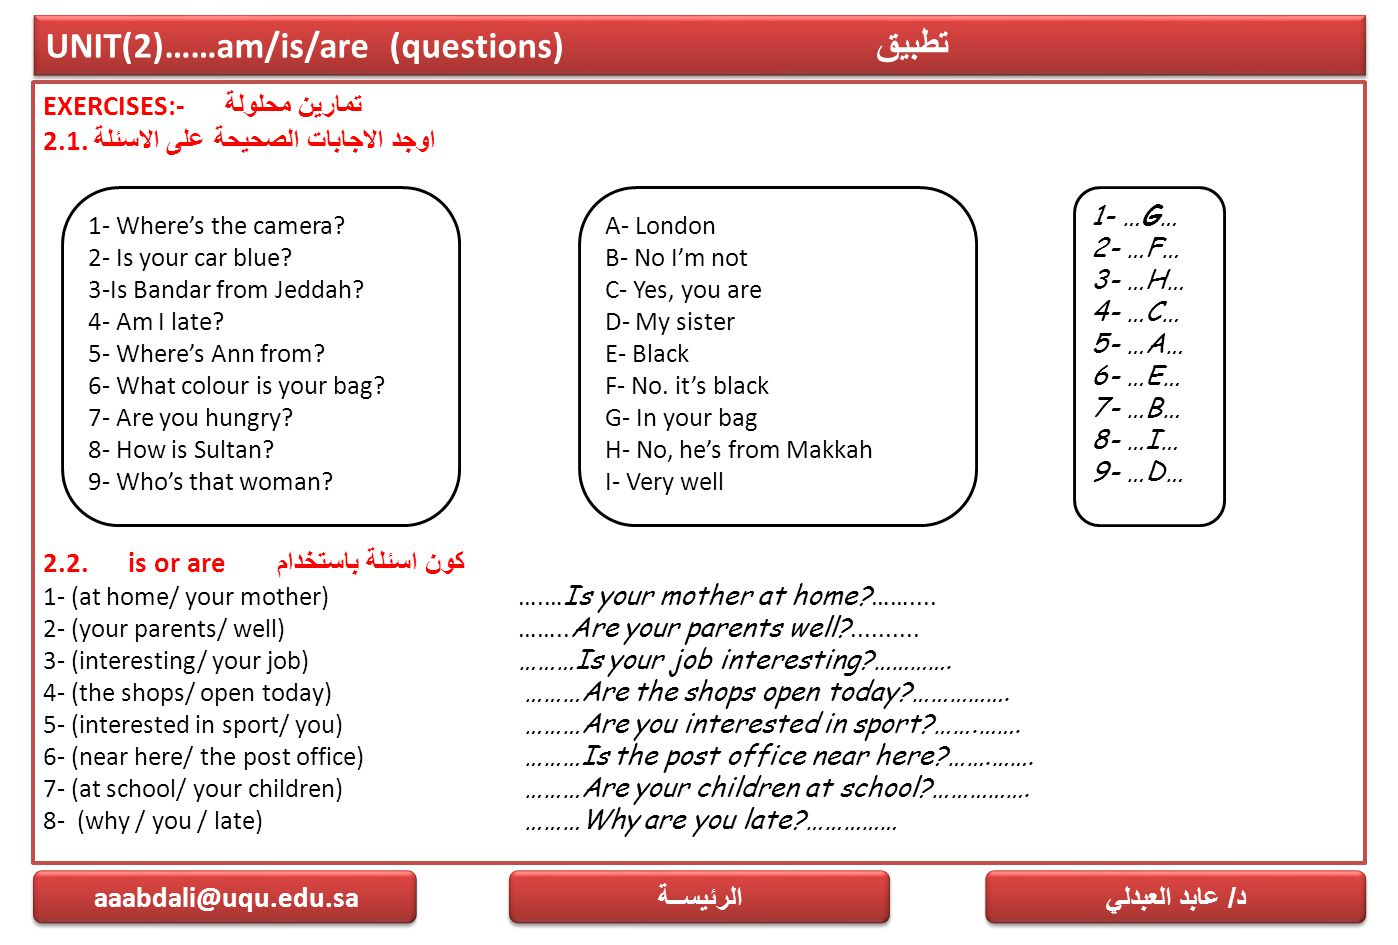 UNIT(2)……am/is/are (questions) تطبيق